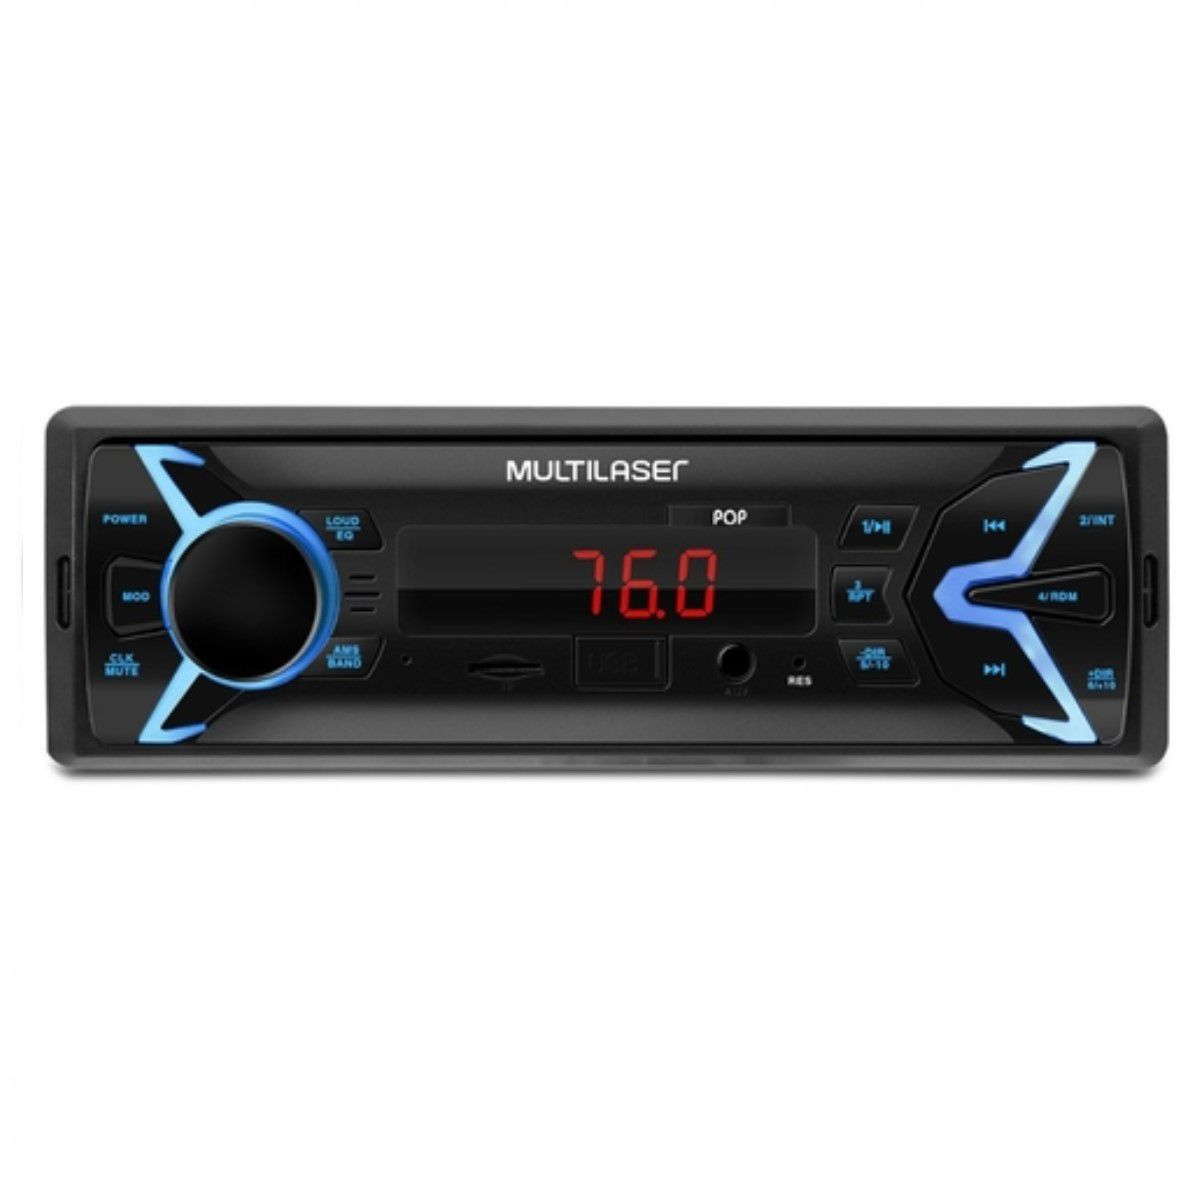 AUTORADIO POP MP3 4X25WRMS FM/SD/USB/AUX (05)